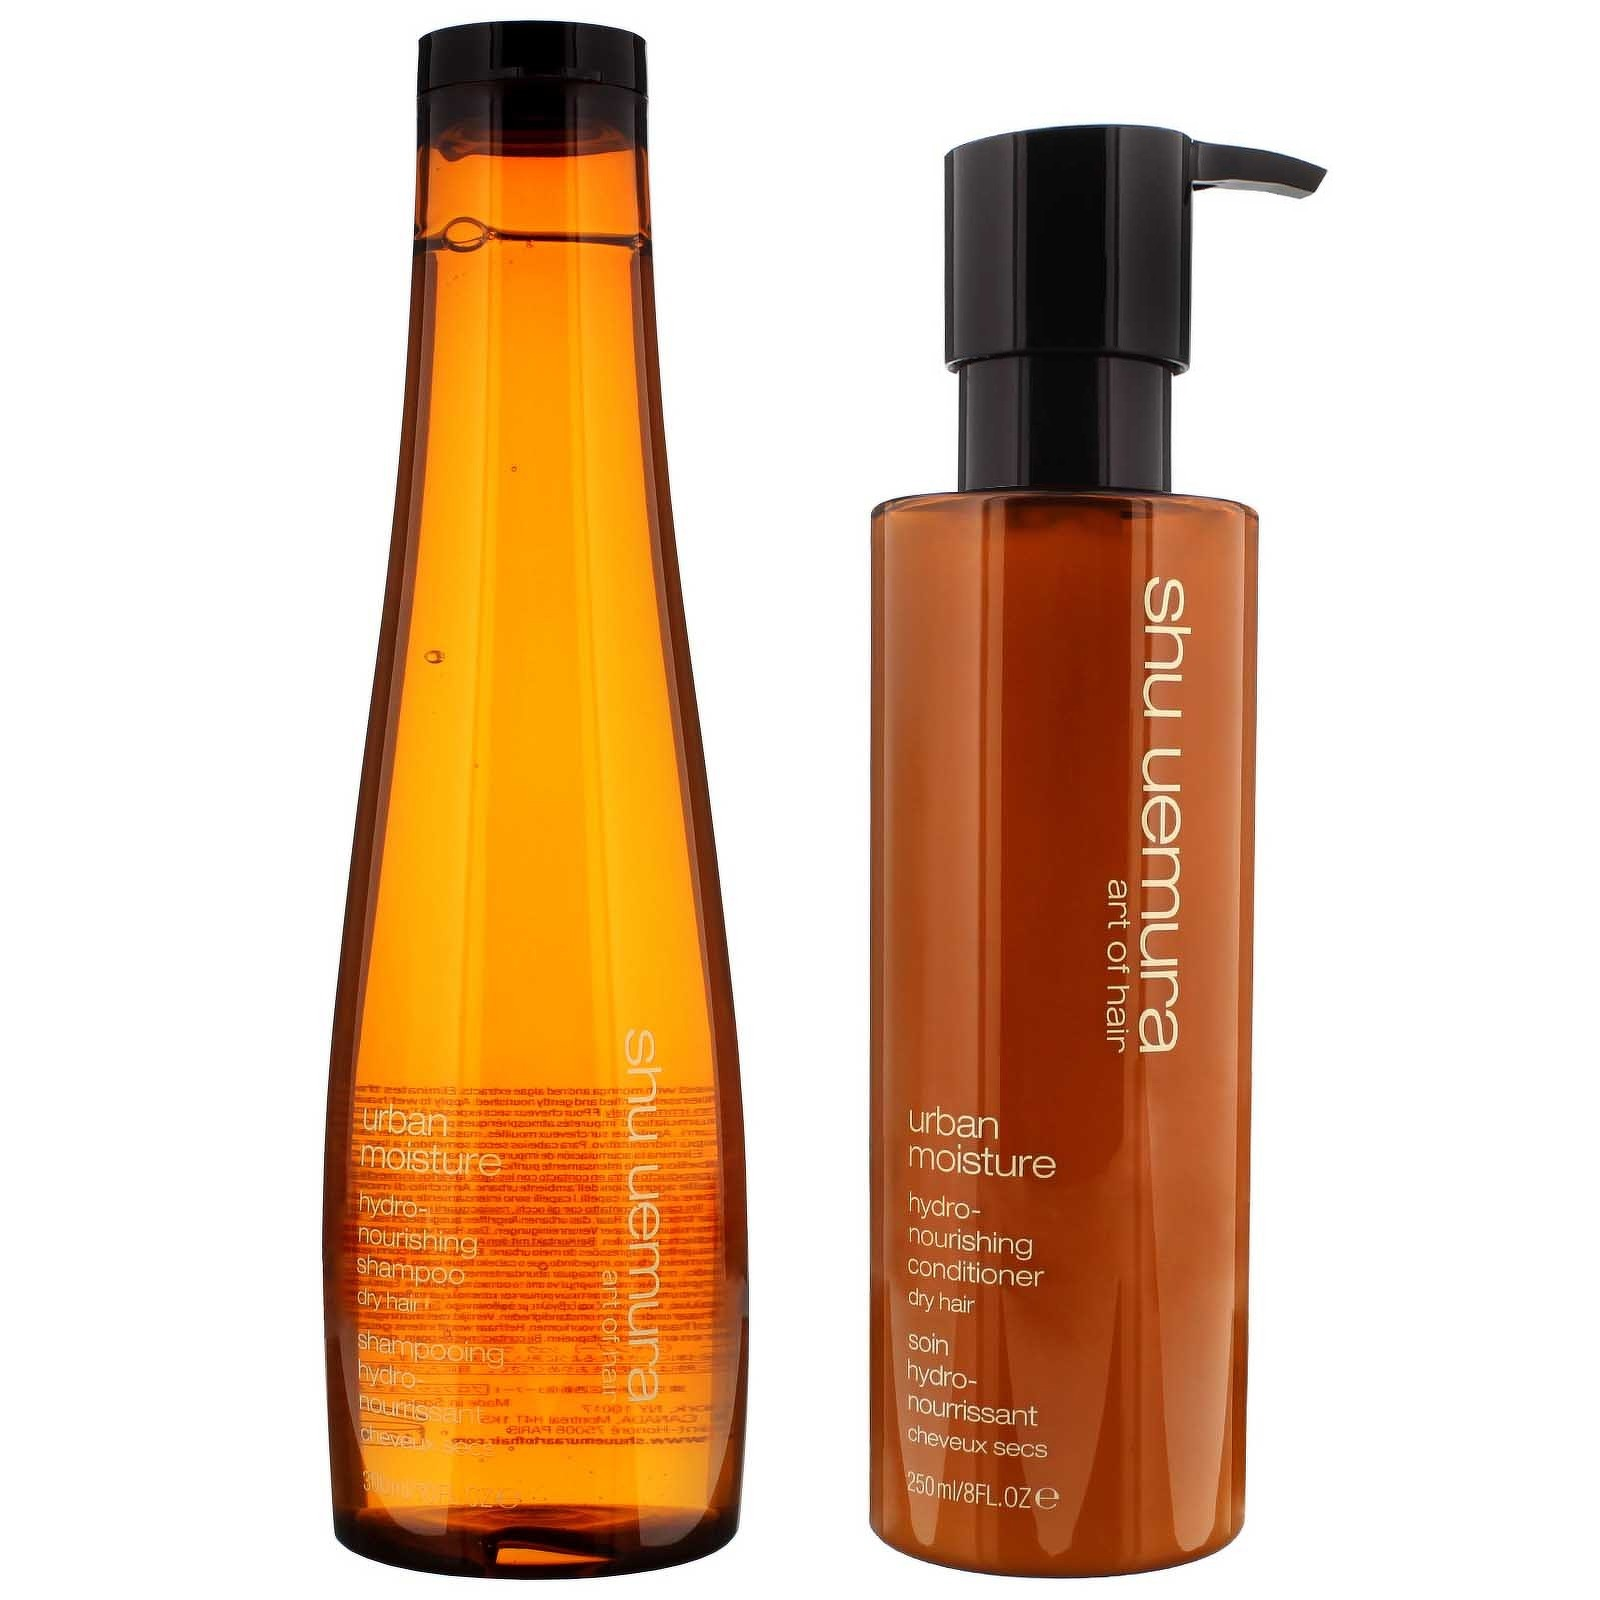 Shu Uemura Art of Hair Urban Moisture Duo Set: Hydro-Nourishing Shampoo 300ml & Conditioner 250ml